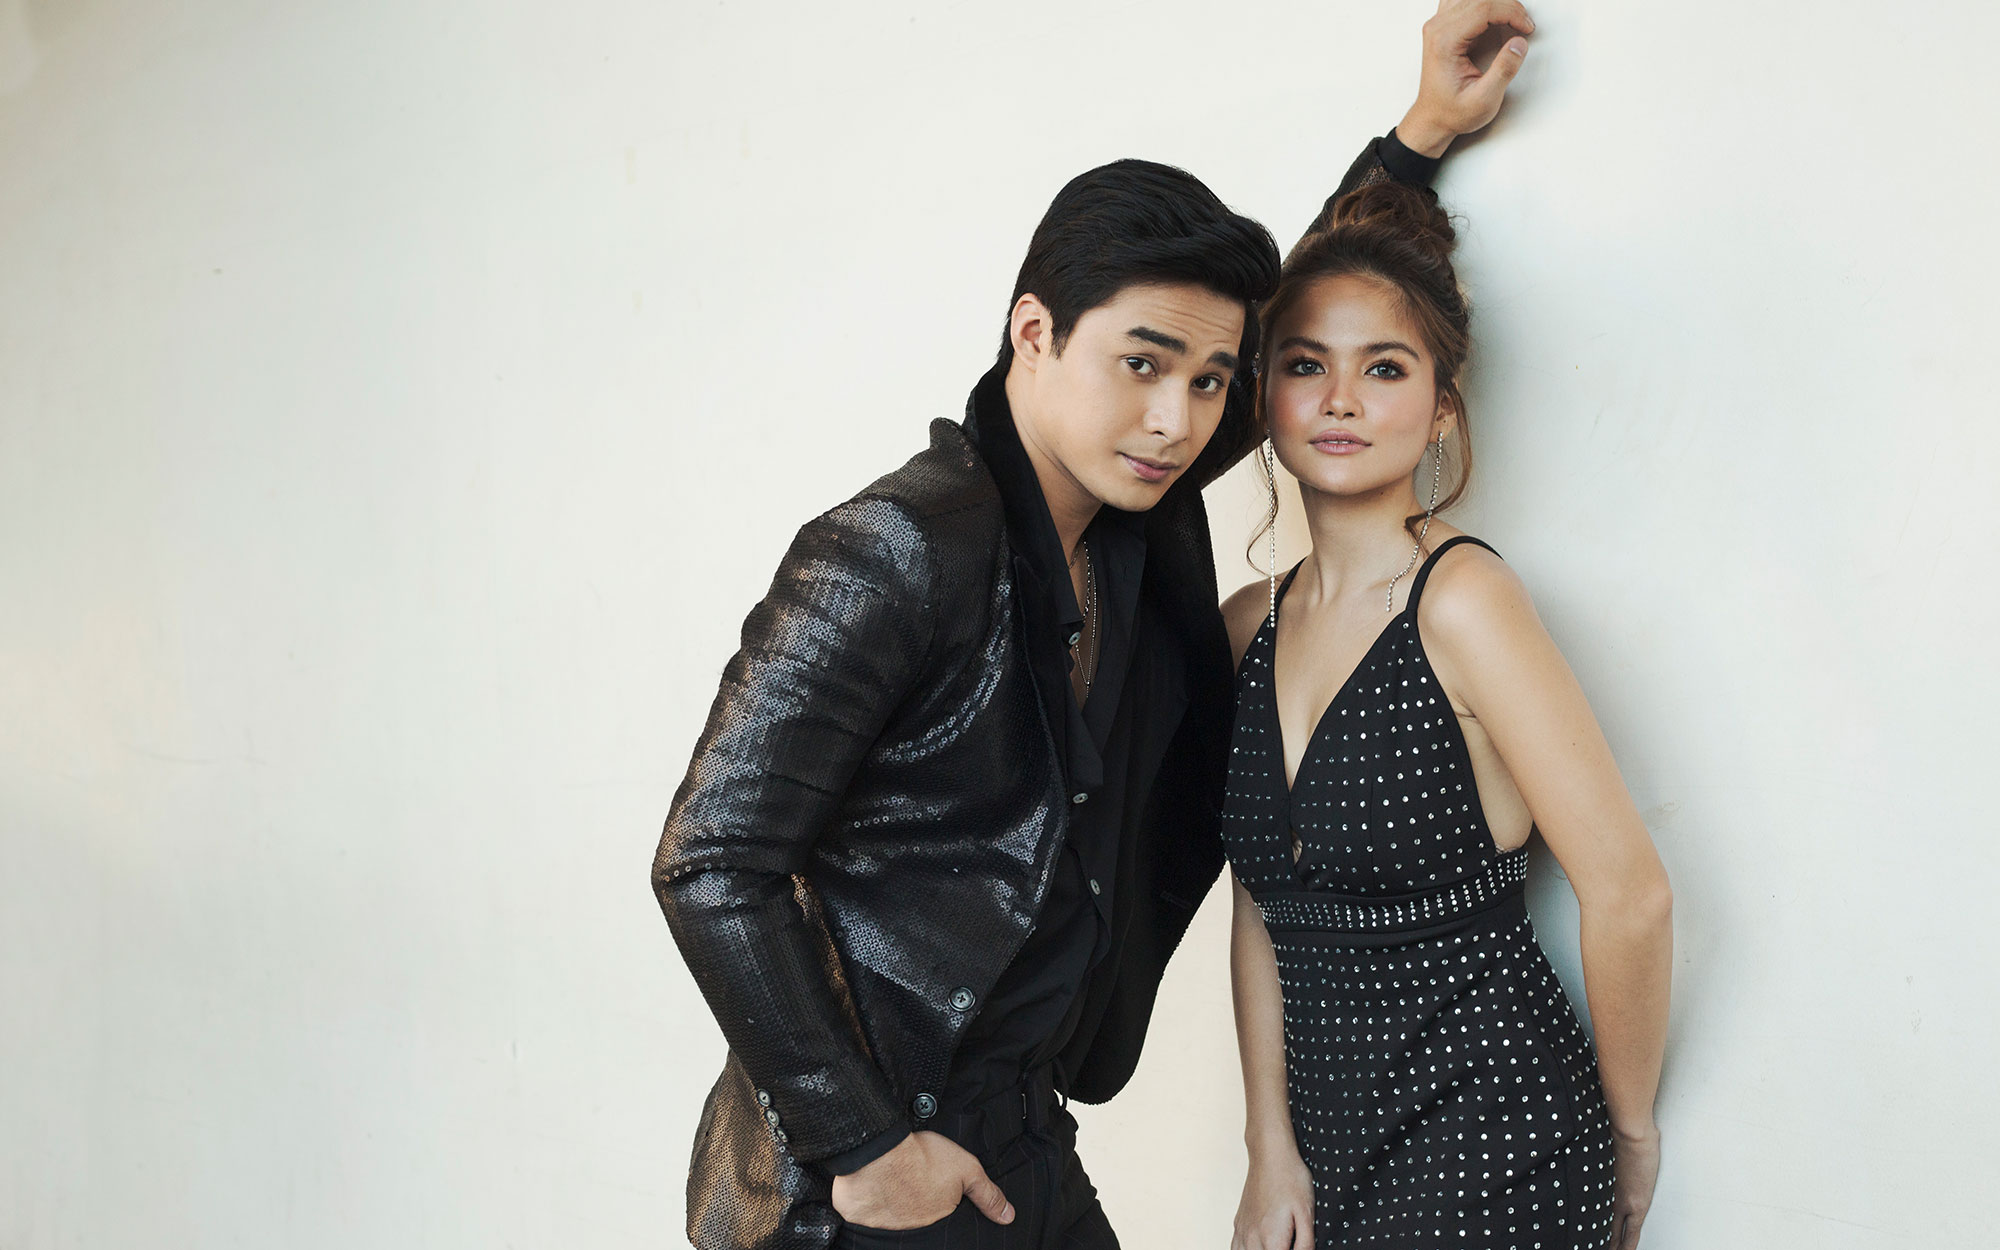 McCoy de Leon and Elisse Joson: Exciting times ahead